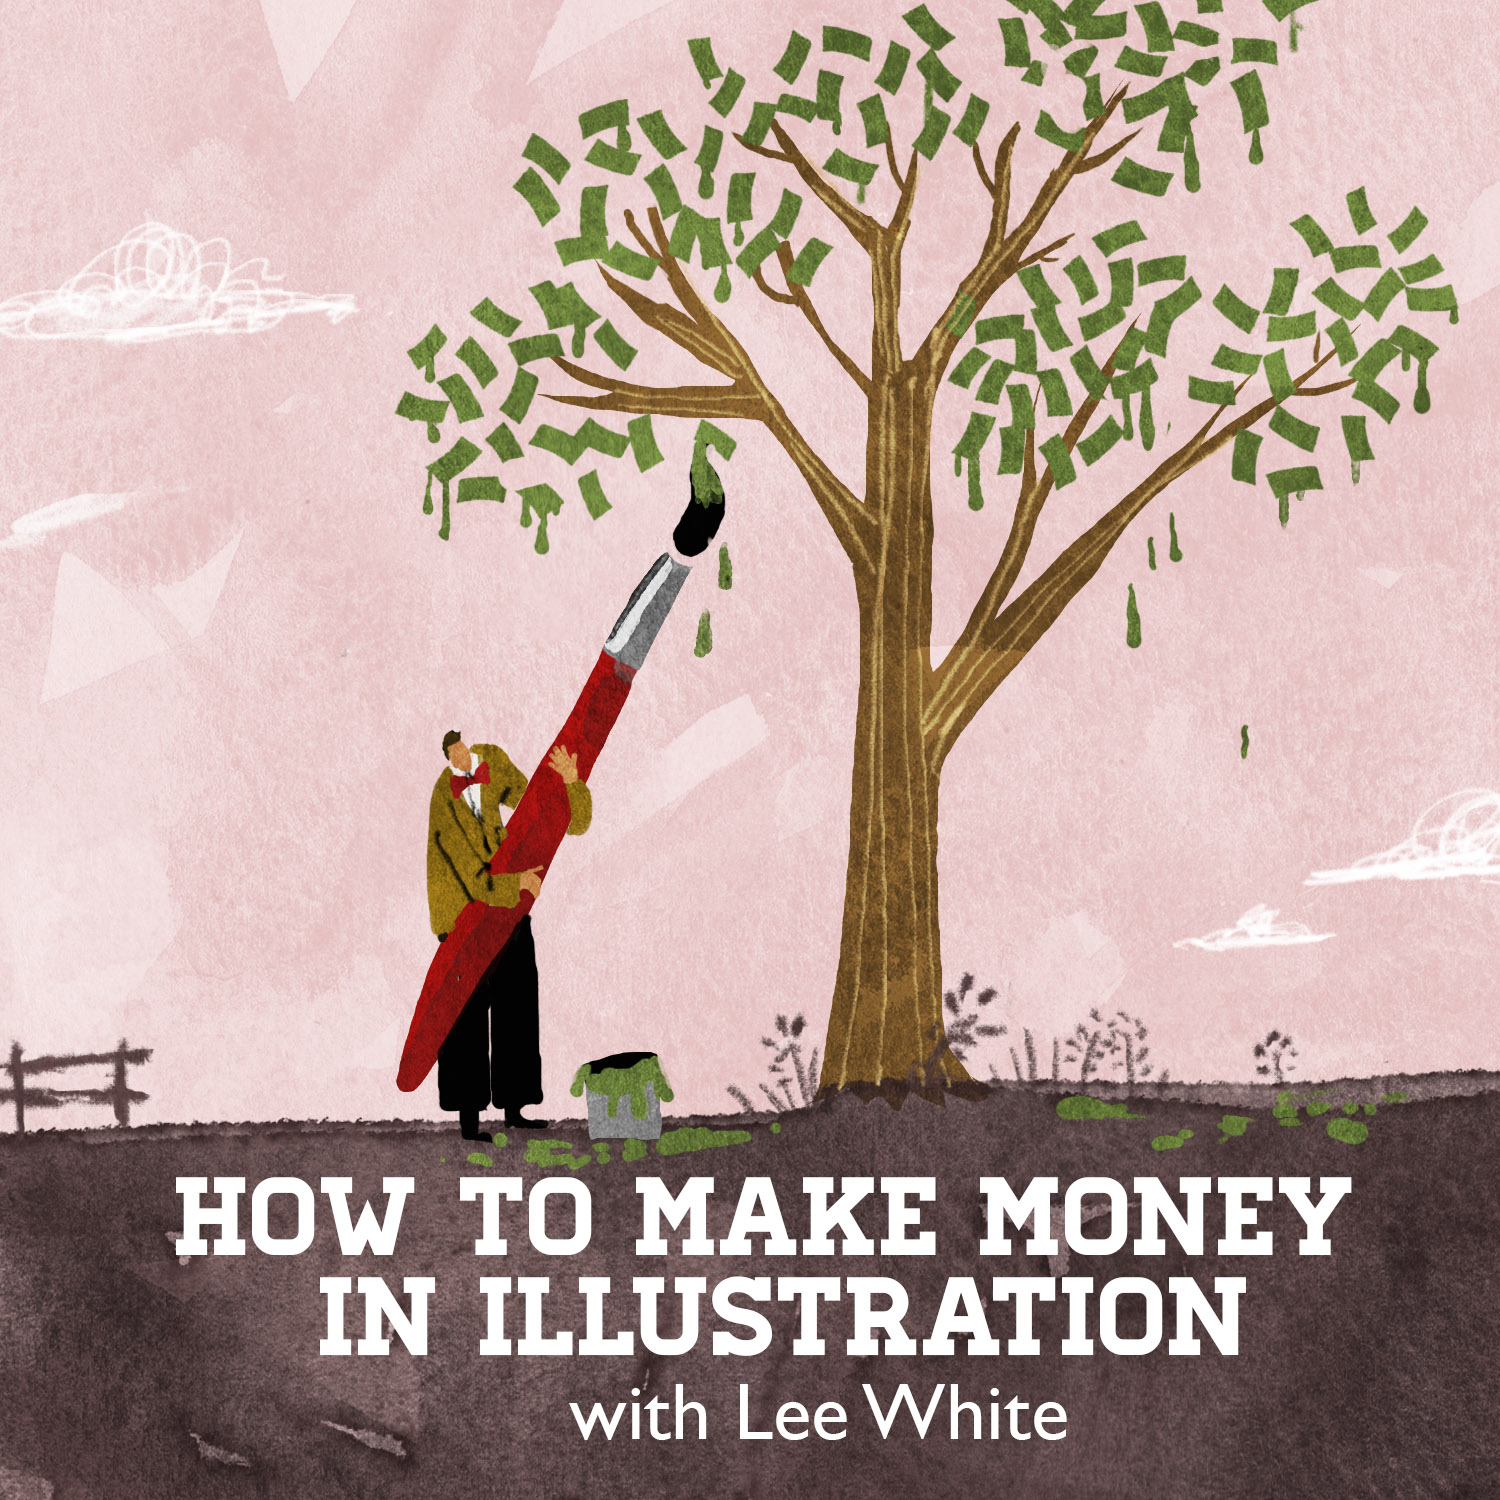 How to make money in illustration.jpg